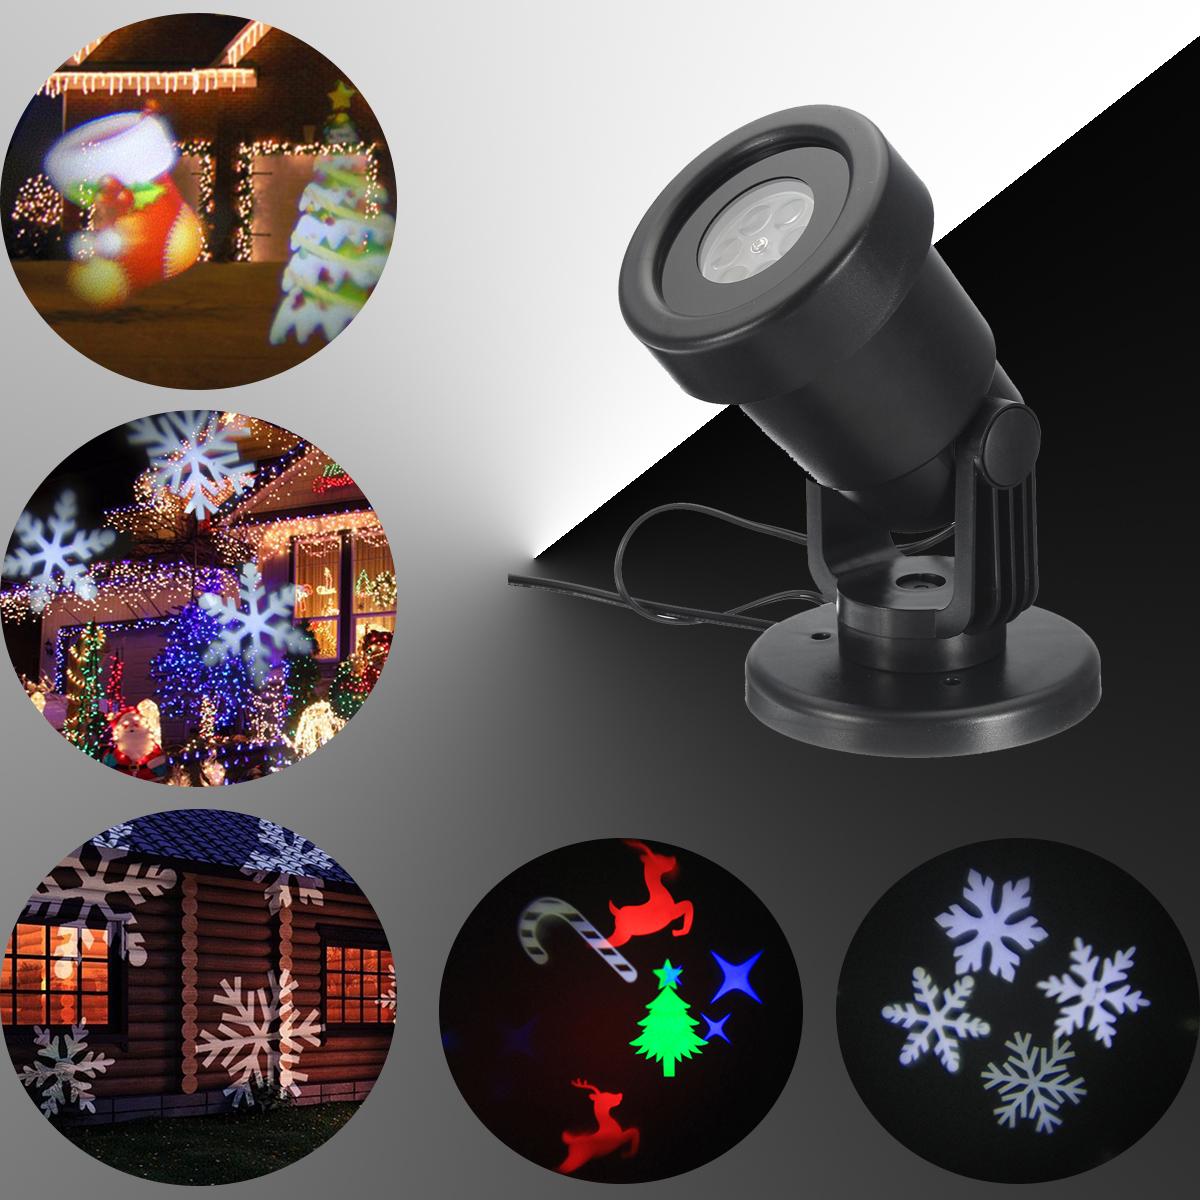 4W LED Night Light Projector 4 Style Christmas Outdoor Moving Holiday Lamps For Children's day Waterproof Night Light Christmas christmas light projector led with 12 switchable patterns indoor and outdoor waterproof spotlight night light for party events